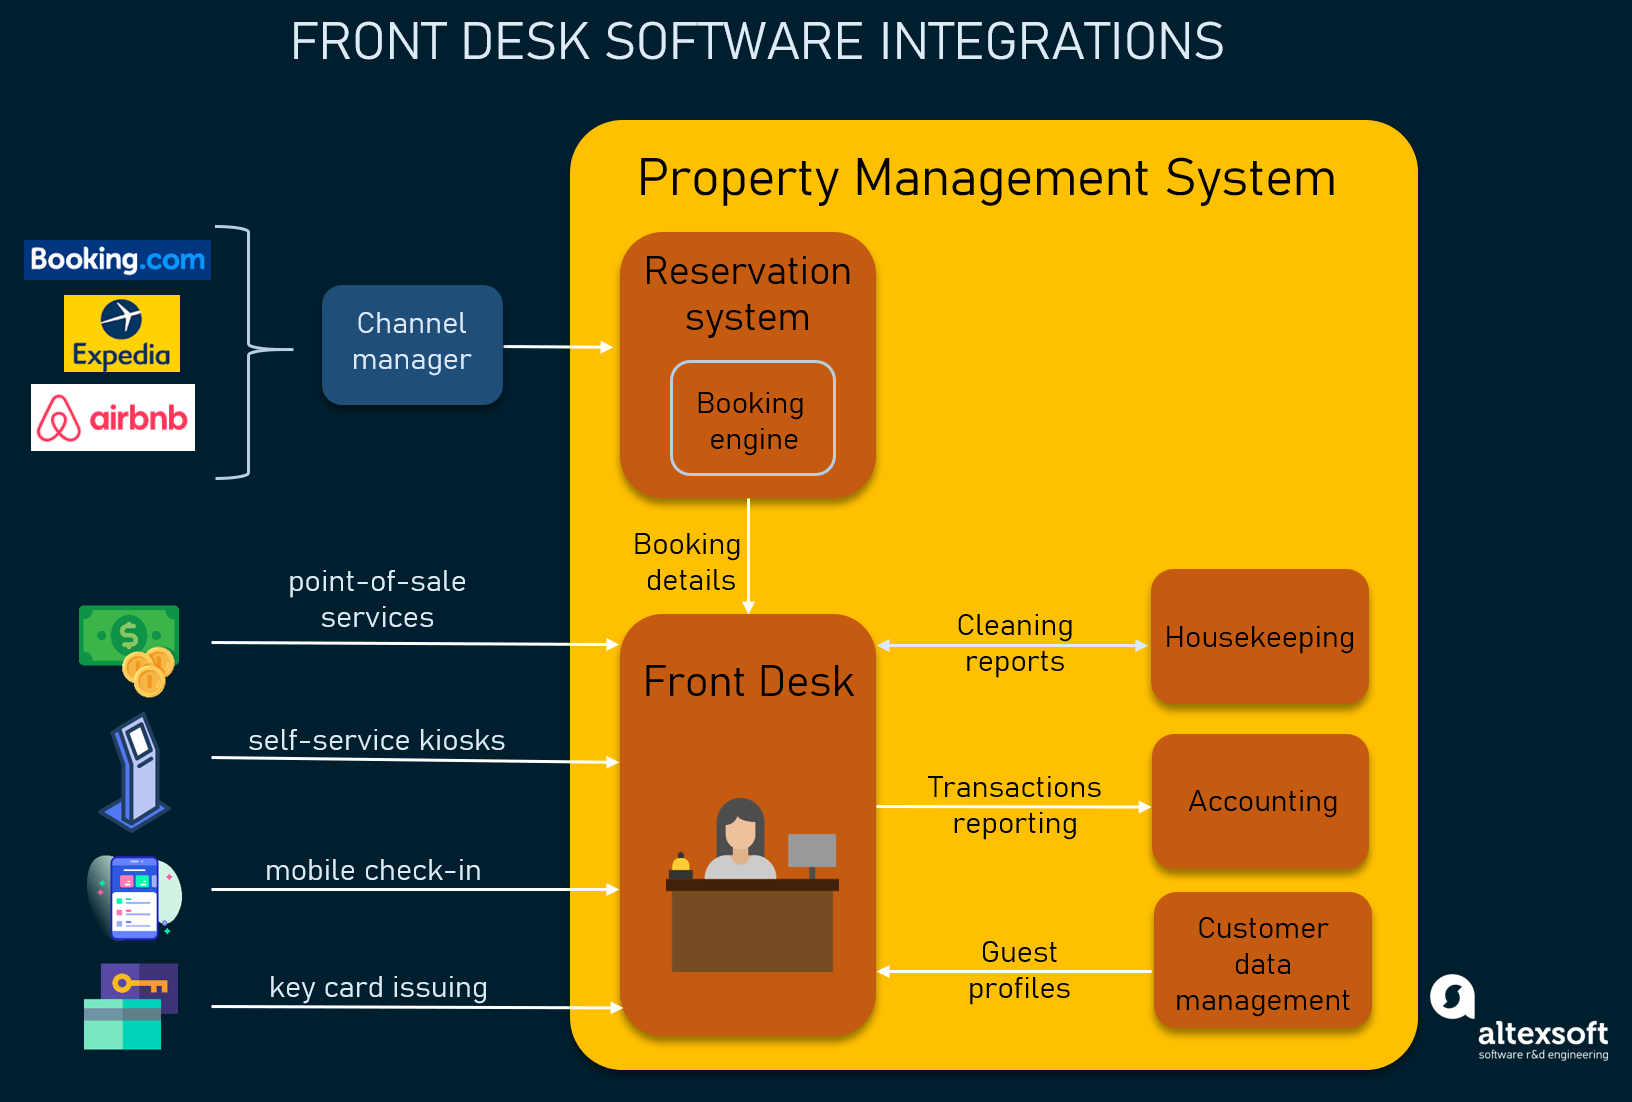 Integrations of a front desk software as a module of a property management system